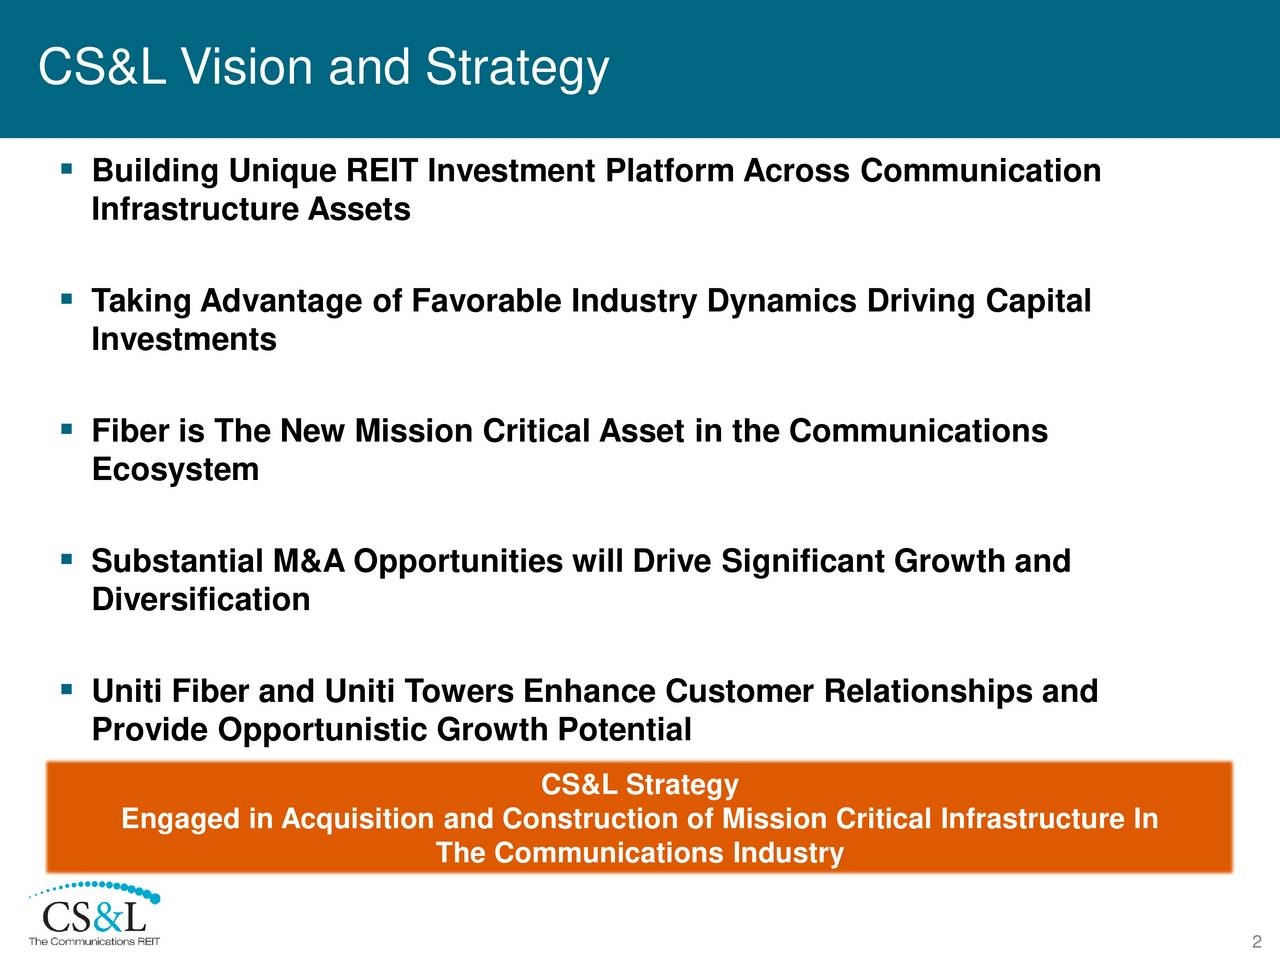 Building Unique REIT Investment Platform AcrossCommunication Infrastructure Assets Taking Advantage of Favorable Industry Dynamics Driving Capital Investments Fiber is The New Mission Critical Asset in the Communications Ecosystem Substantial M&A Opportunities will Drive Significant Growth and Diversification Uniti Fiber and Uniti Towers Enhance Customer Relationships and Provide Opportunistic Growth Potential CS&L Strategy Engaged in Acquisition and Construction of Mission Critical Infrastructure In The Communications Industry